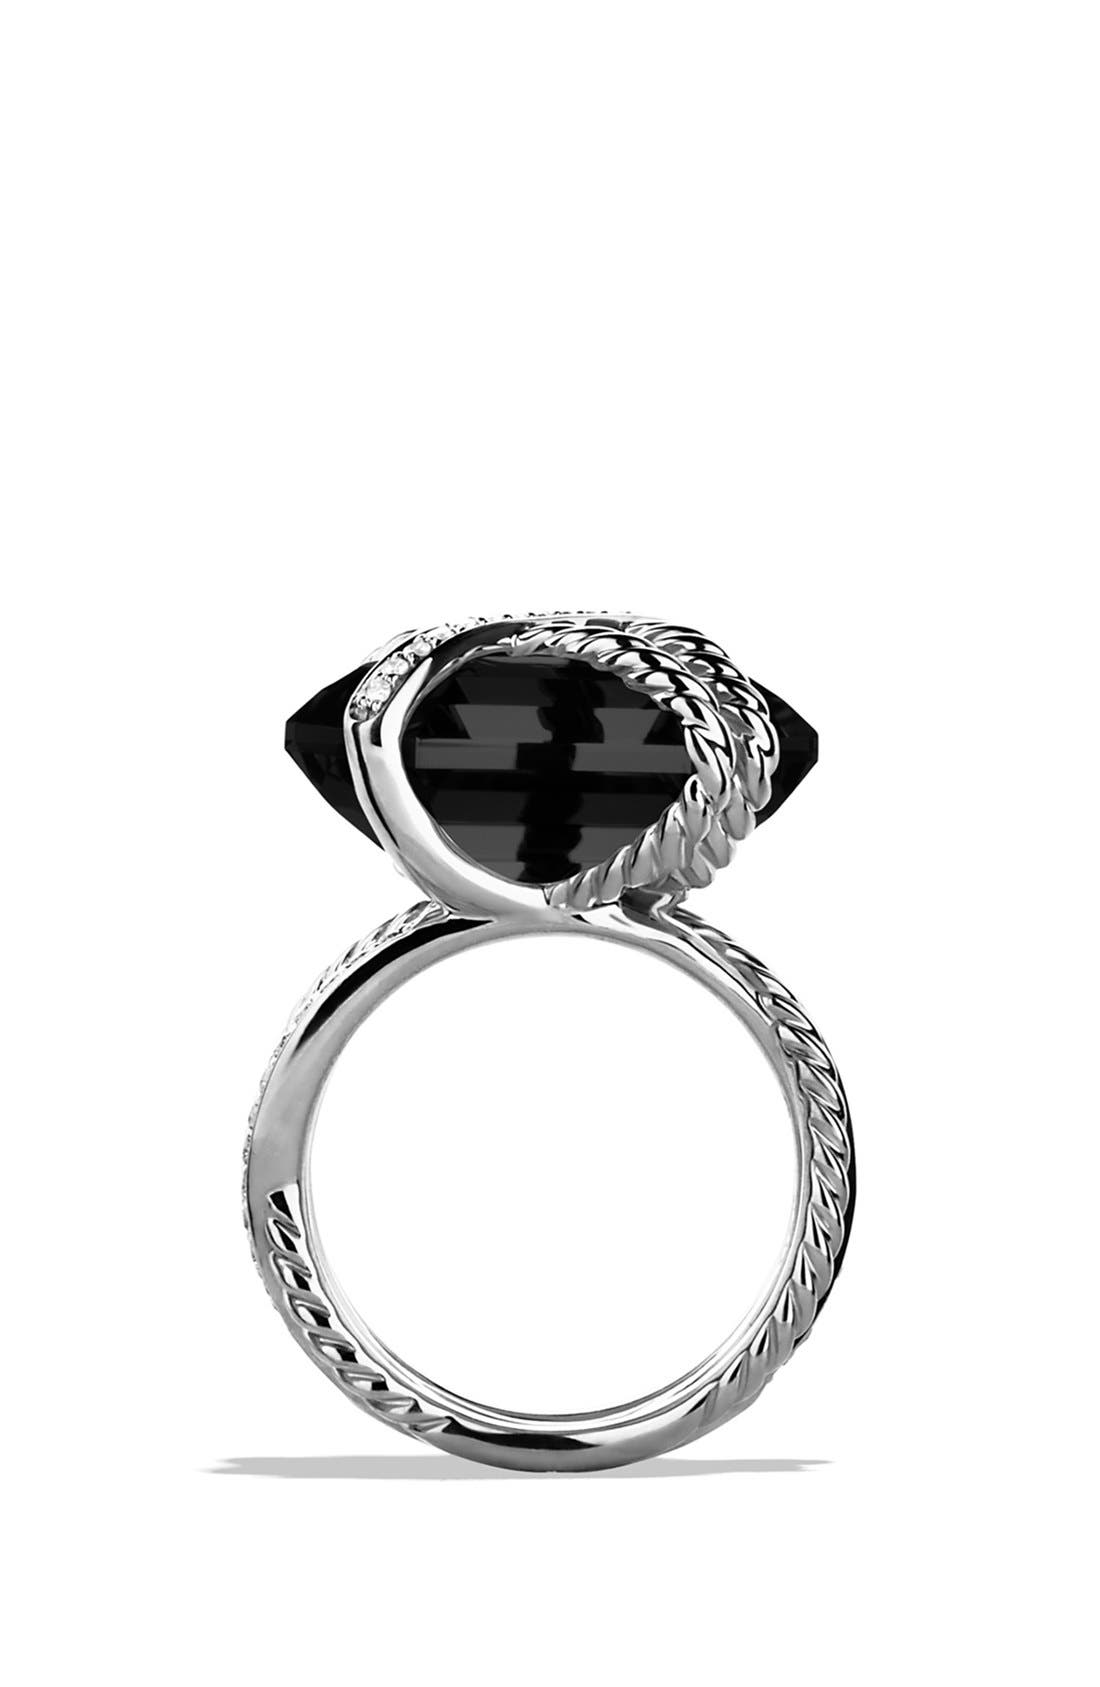 DAVID YURMAN,                             'Cable Wrap' Ring with Black Onyx and Diamonds,                             Alternate thumbnail 3, color,                             001